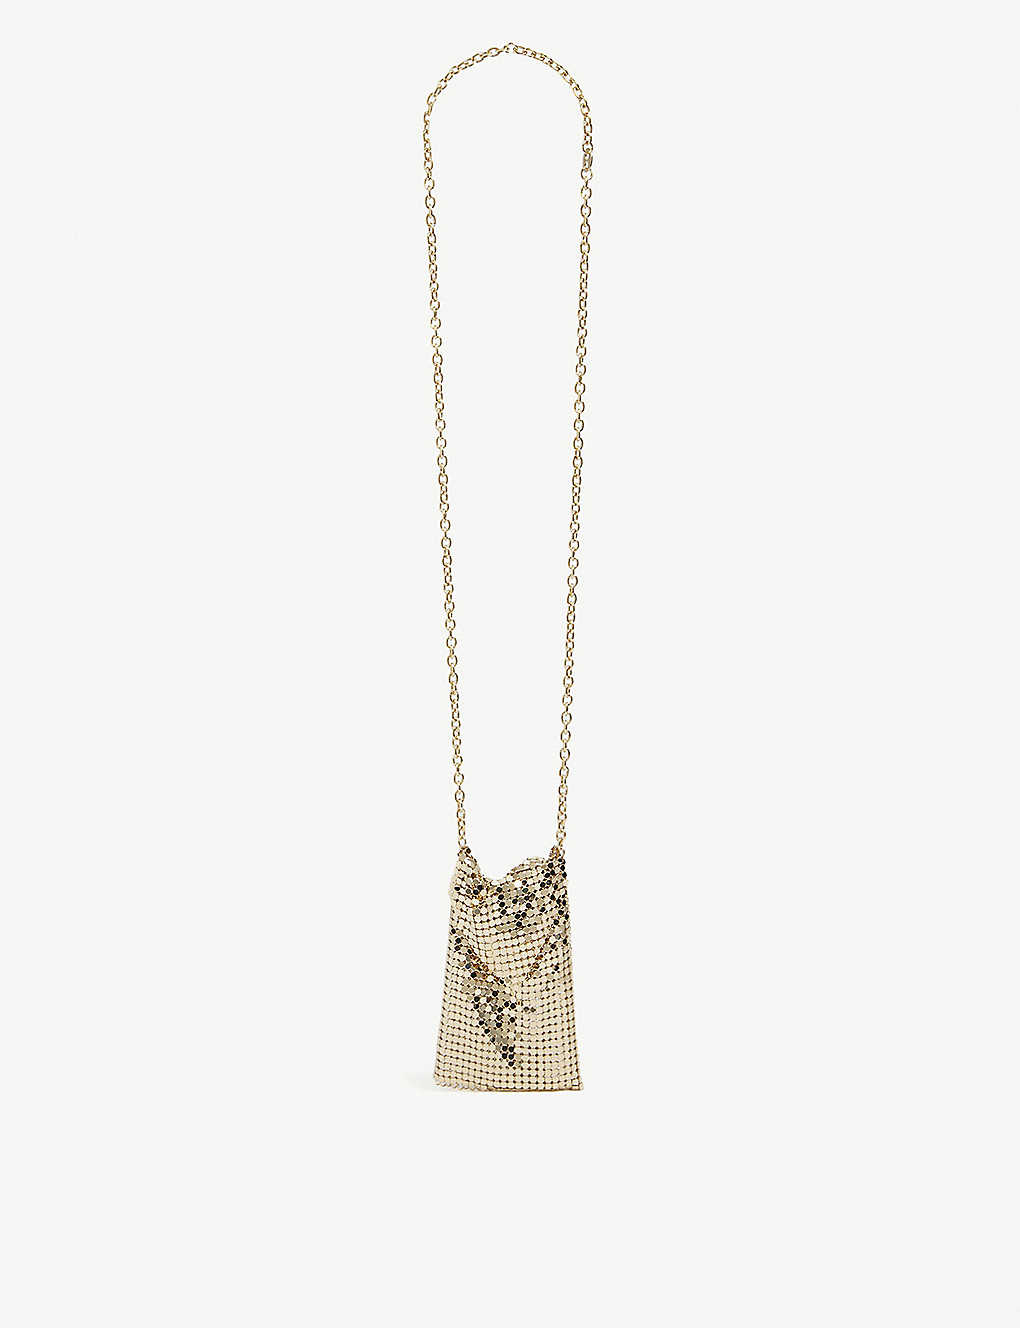 PACO RABANNE: Pixel mini bag brass necklace